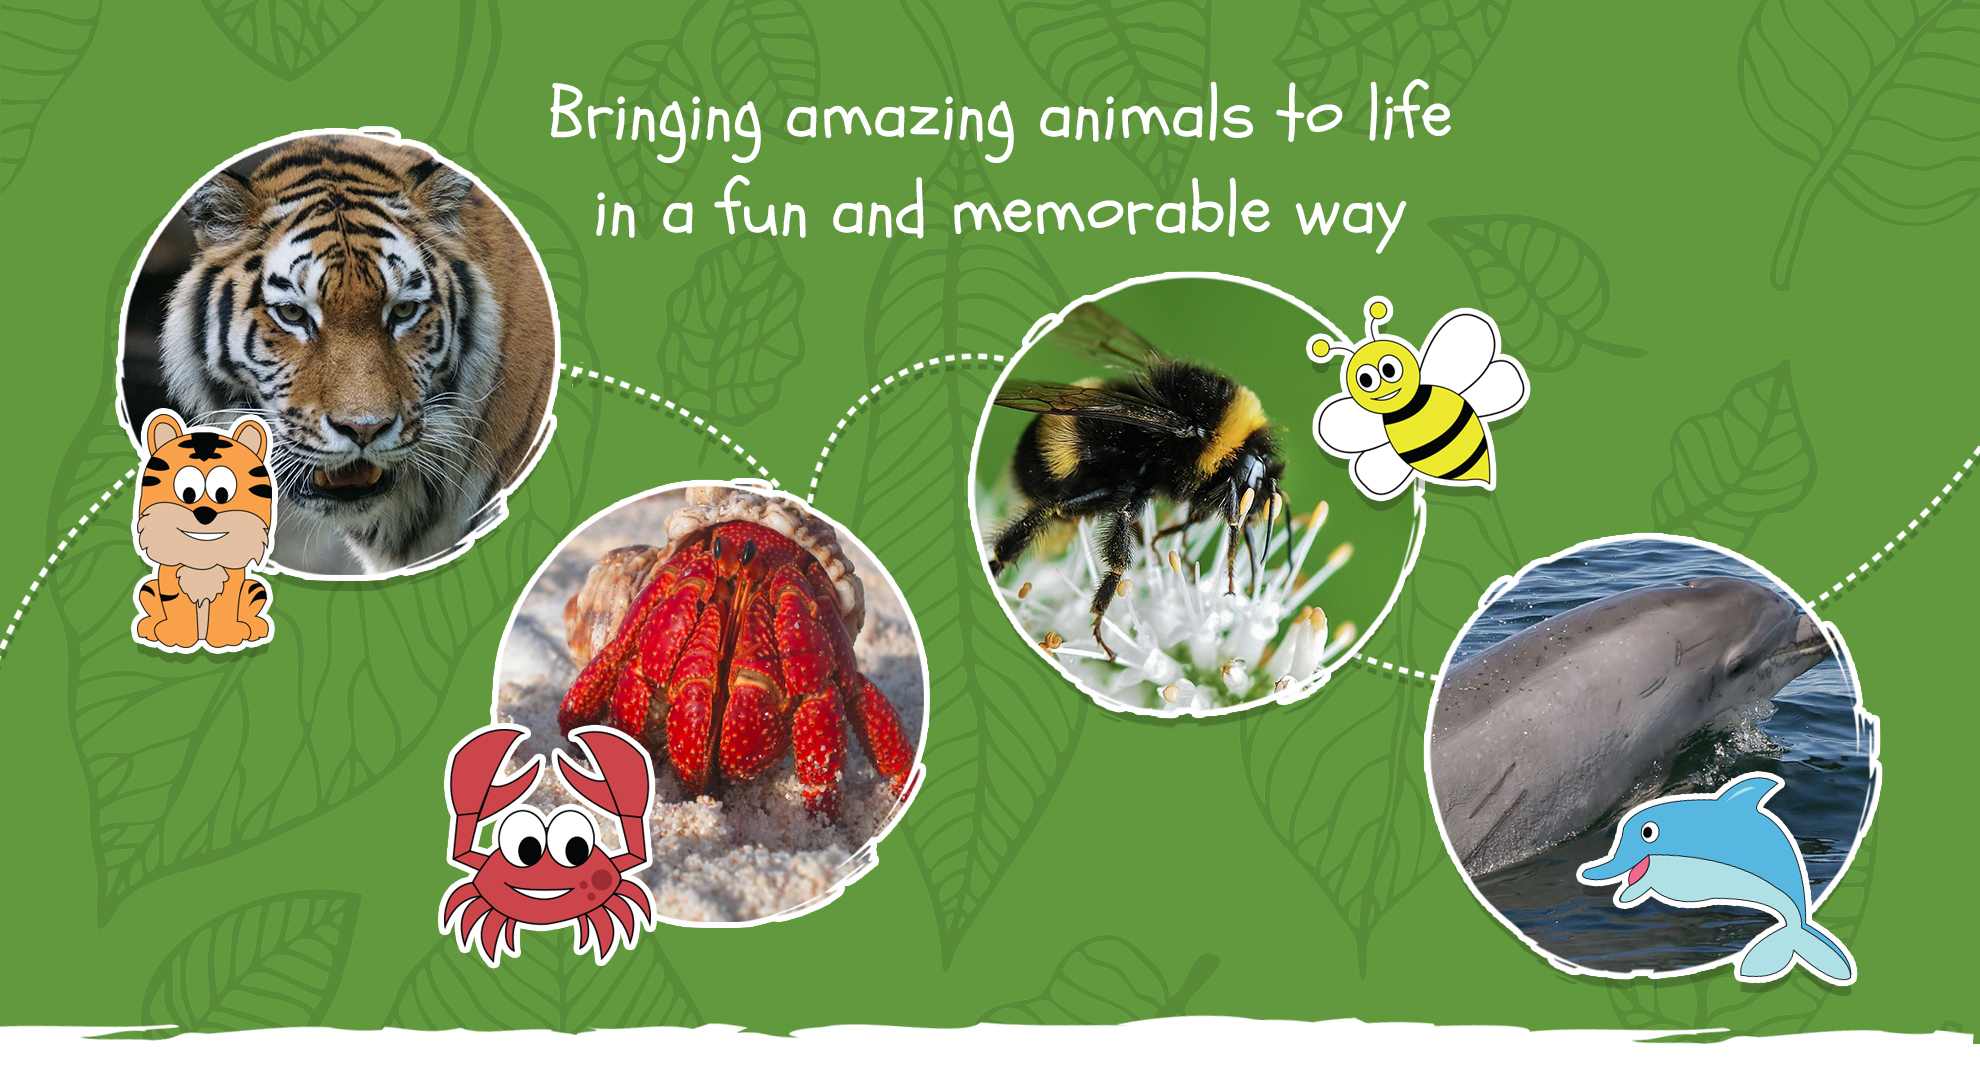 Wild Planet Explorers - Bringing amazing animals to life in a fun and memorable way